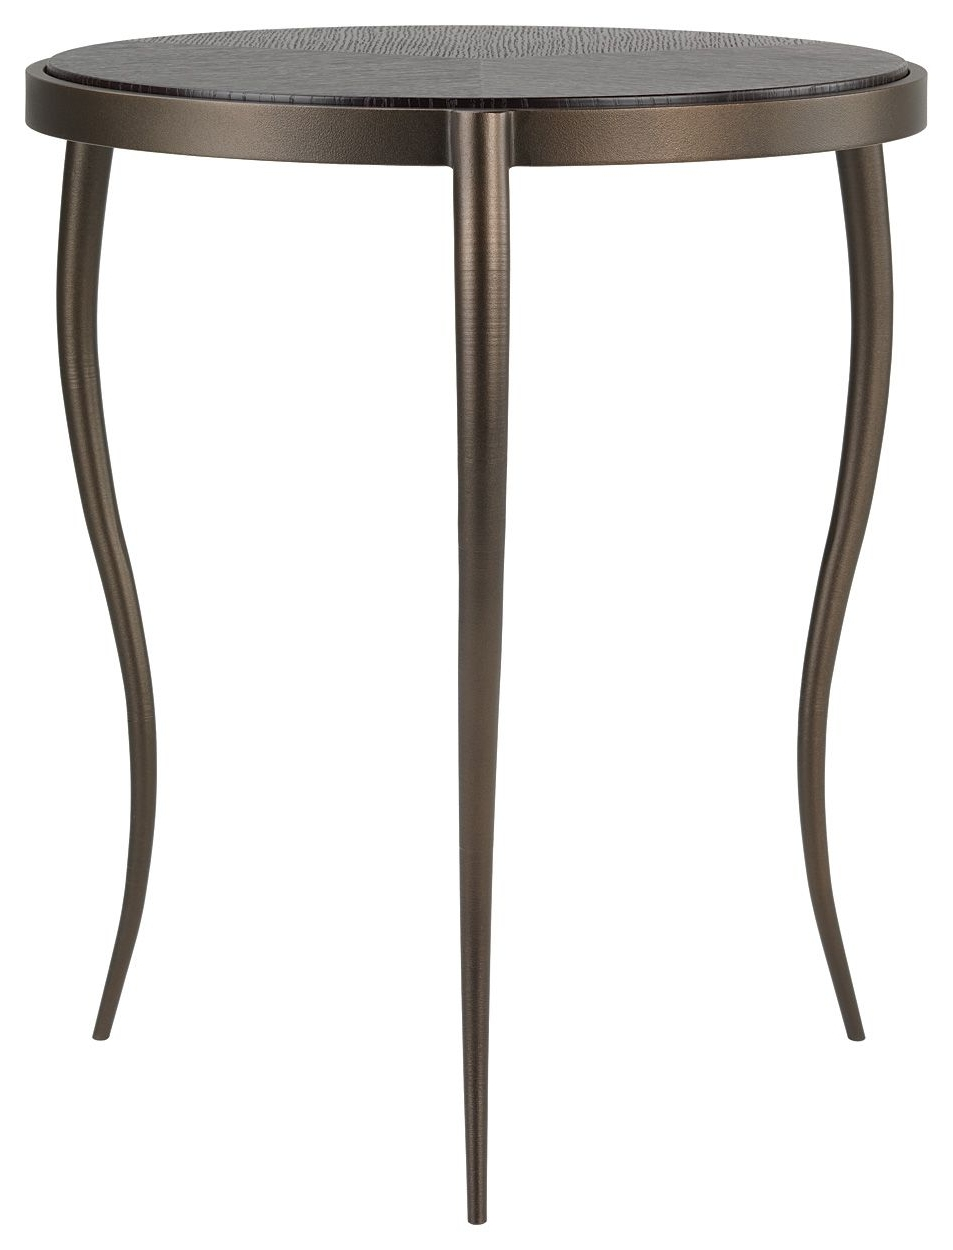 Brinkley Side Table In Textured Bronze With A Dark Smoked Oak Top Throughout Most Current Smoked Oak Side Tables (View 10 of 20)